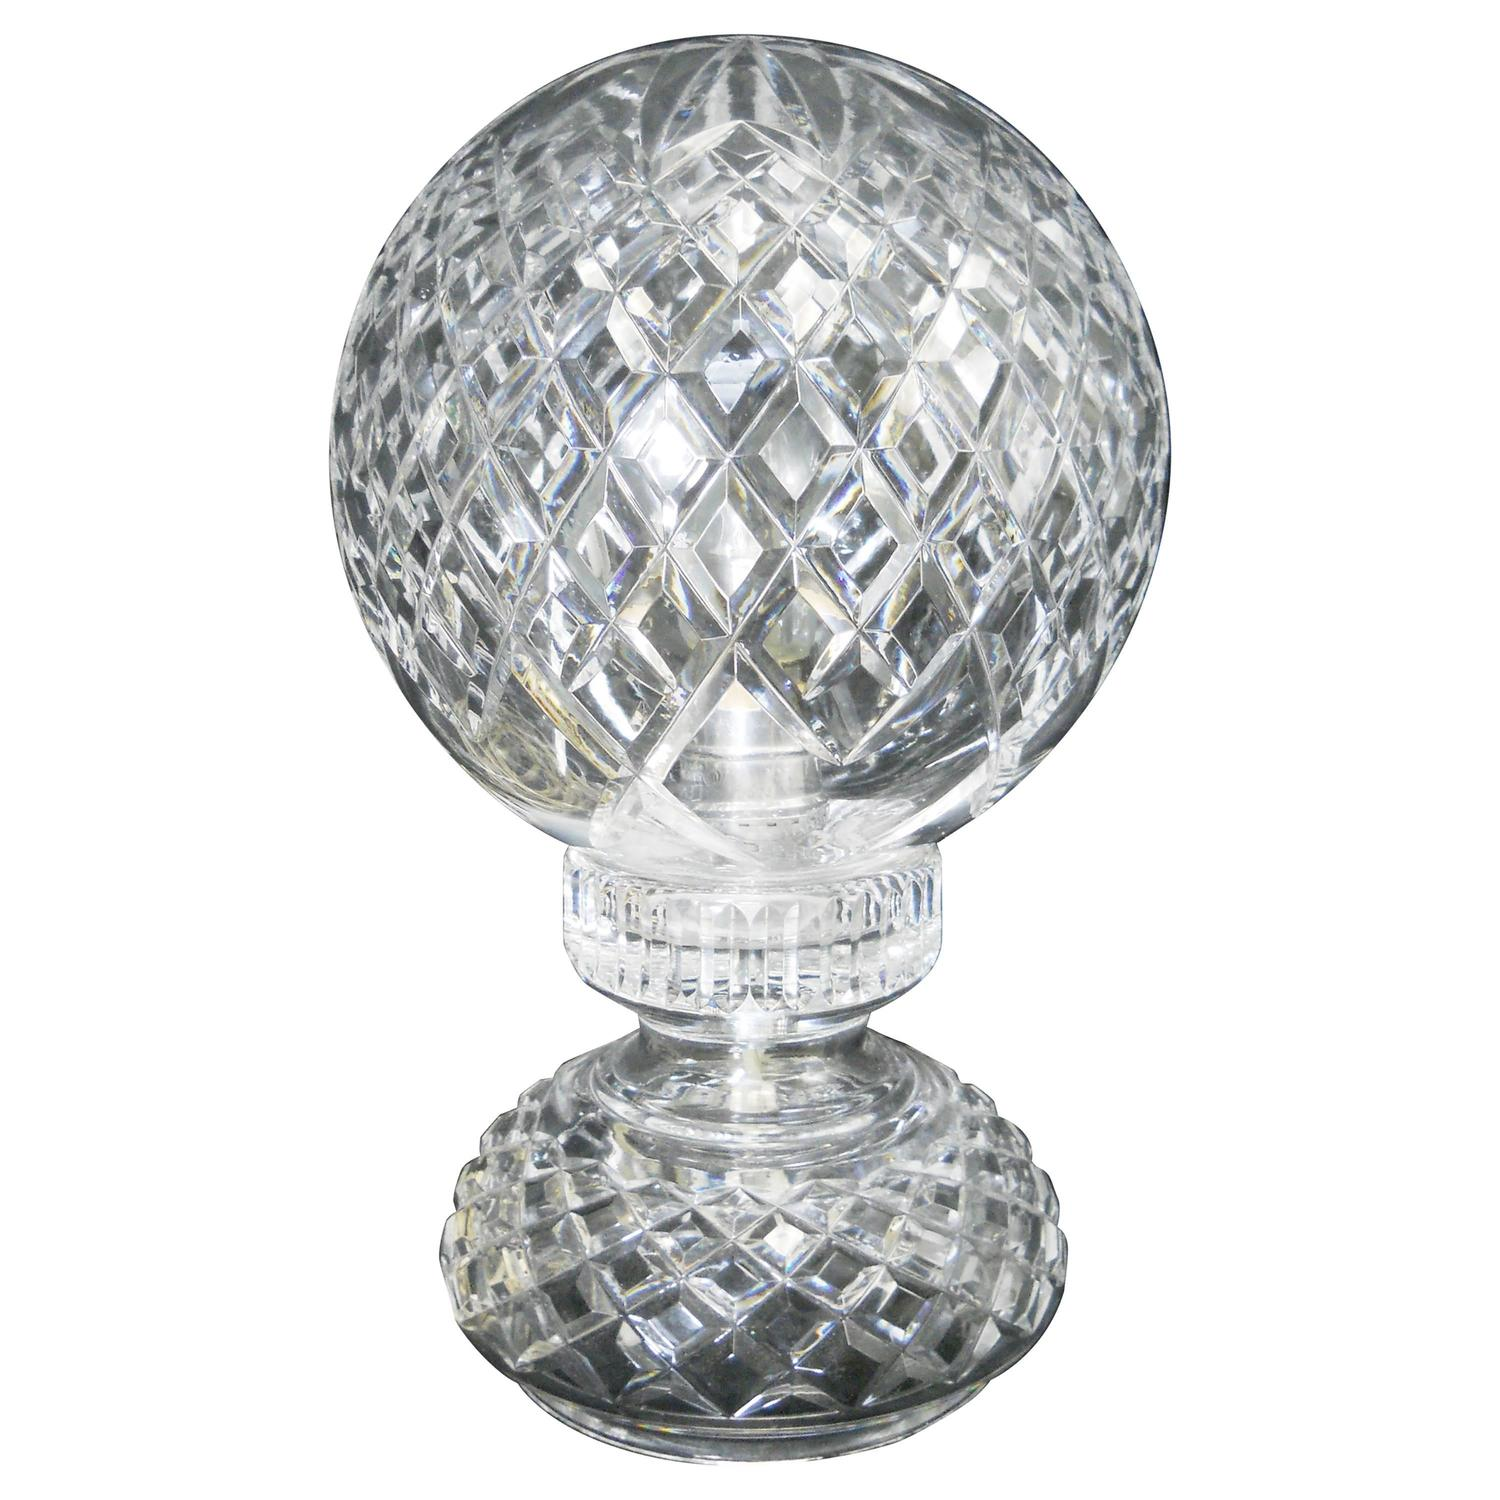 Fantastic Waterford Crystal Patterns for Dining Ware Ideas: Pretty Waterford Crystal Patterns For Dining Sets Ideas With Waterford Crystal Glass Patterns